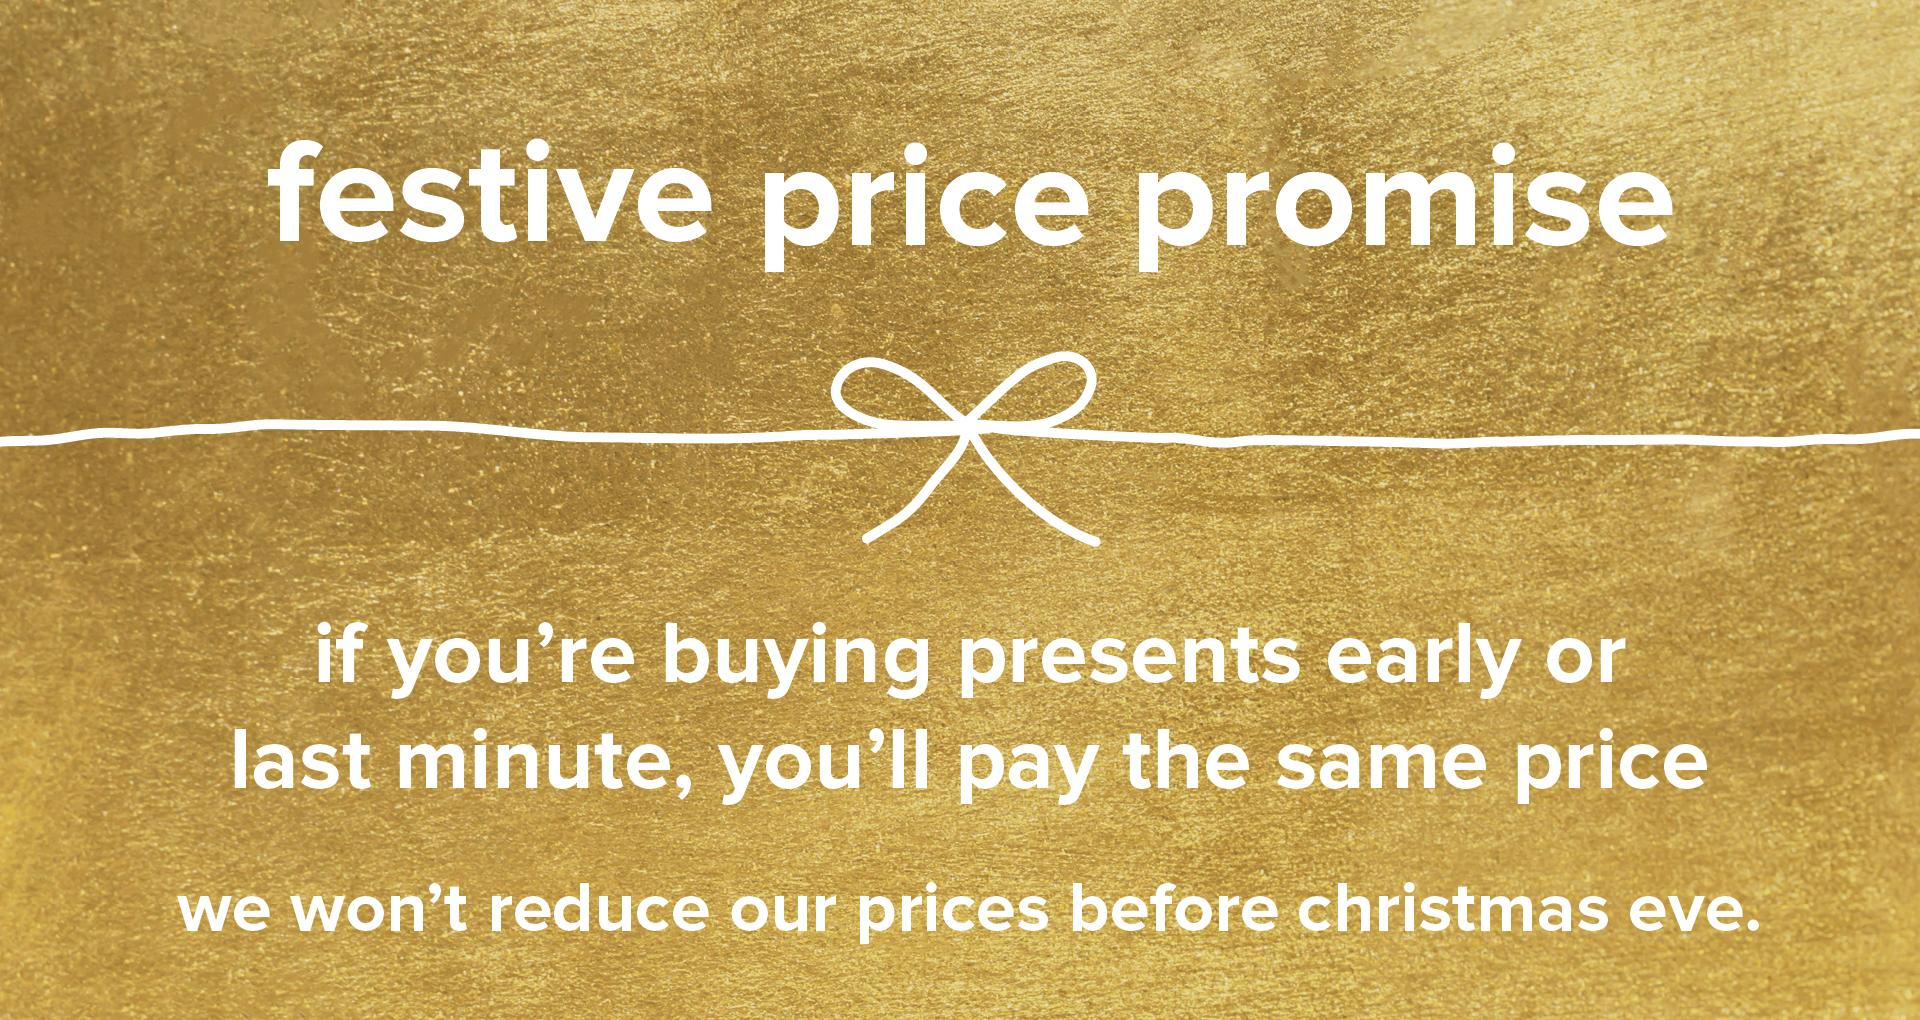 We won't reduce our prices before Christmas Eve